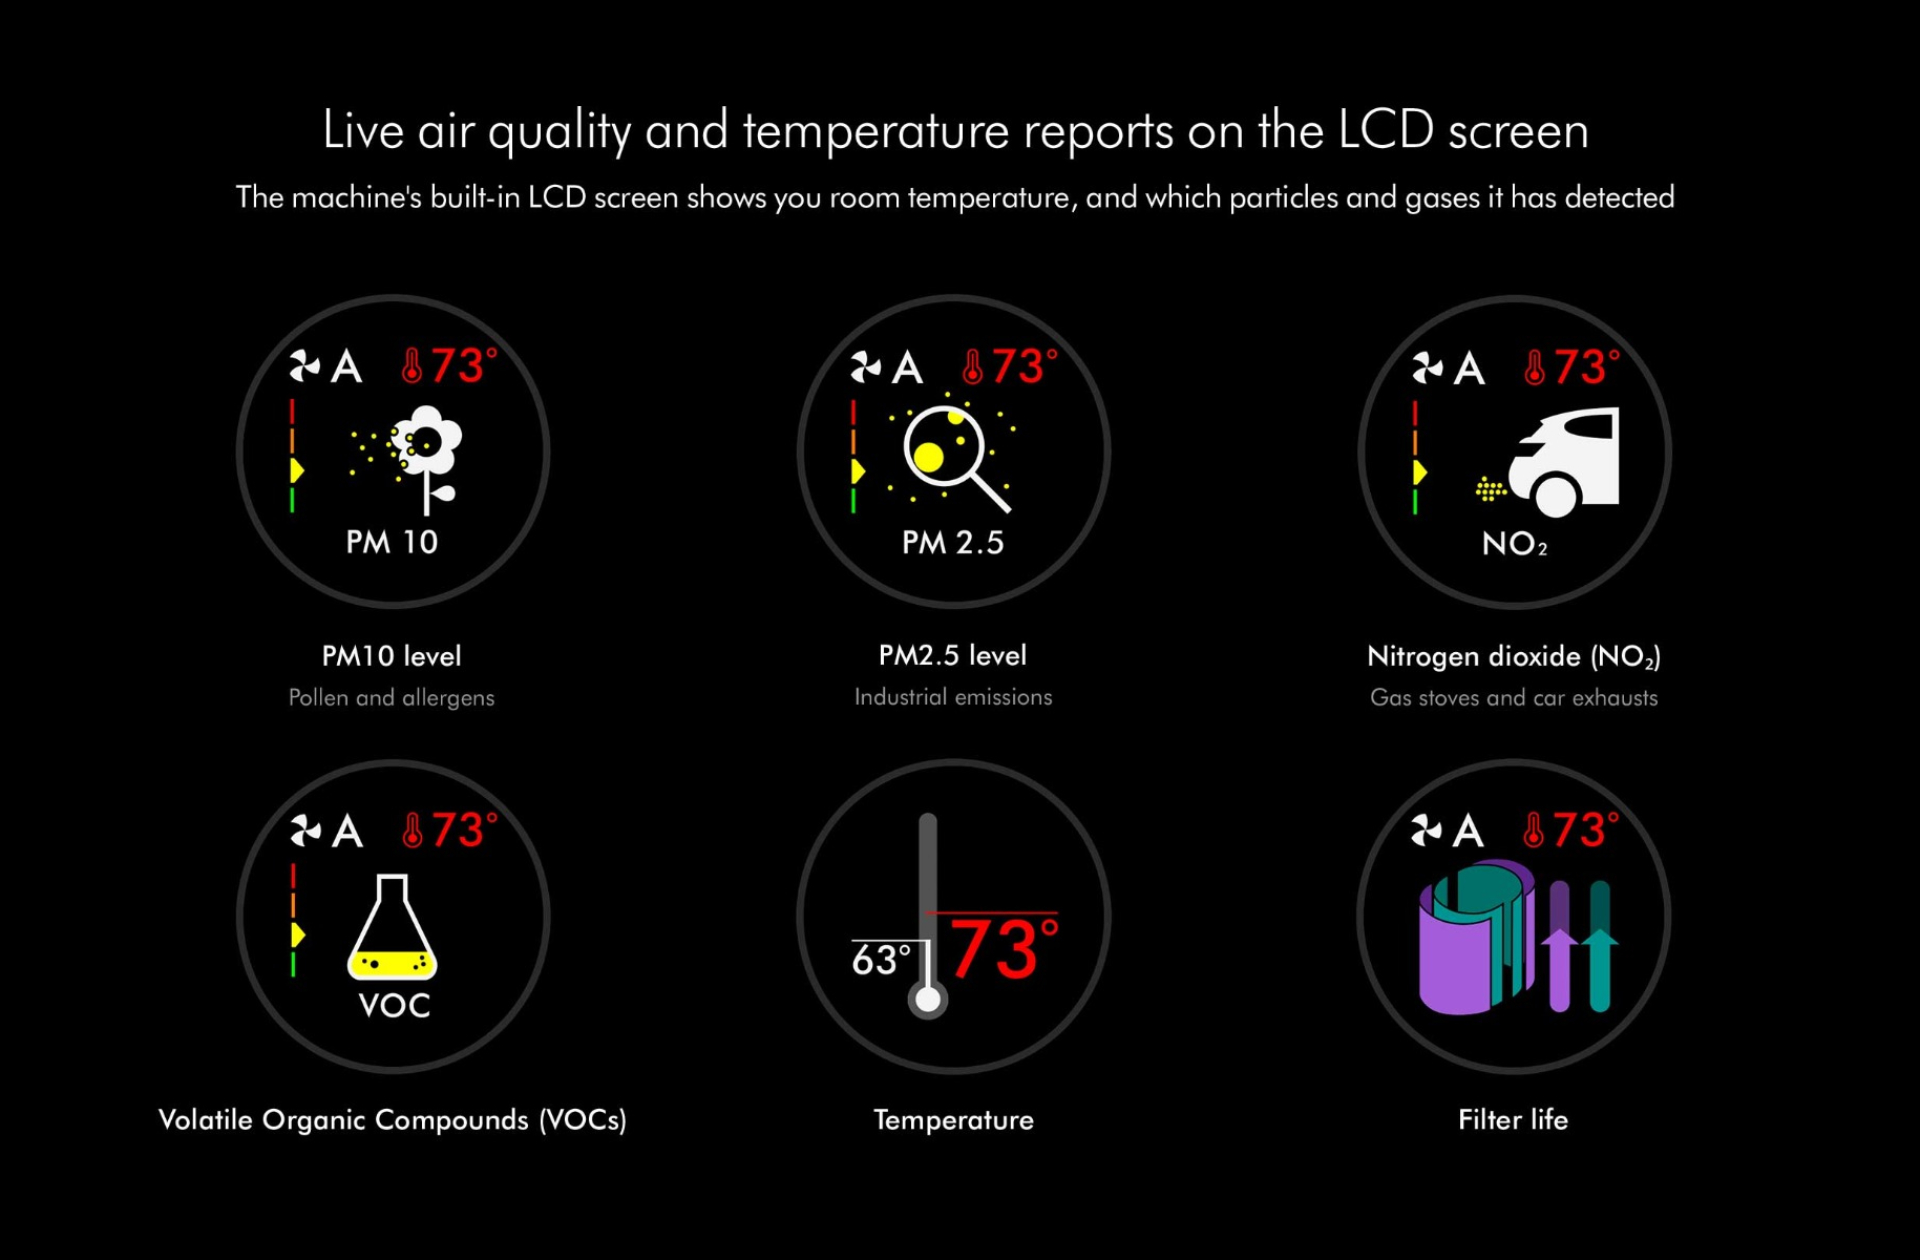 Live air quality and temperature reports on the LCD sreen